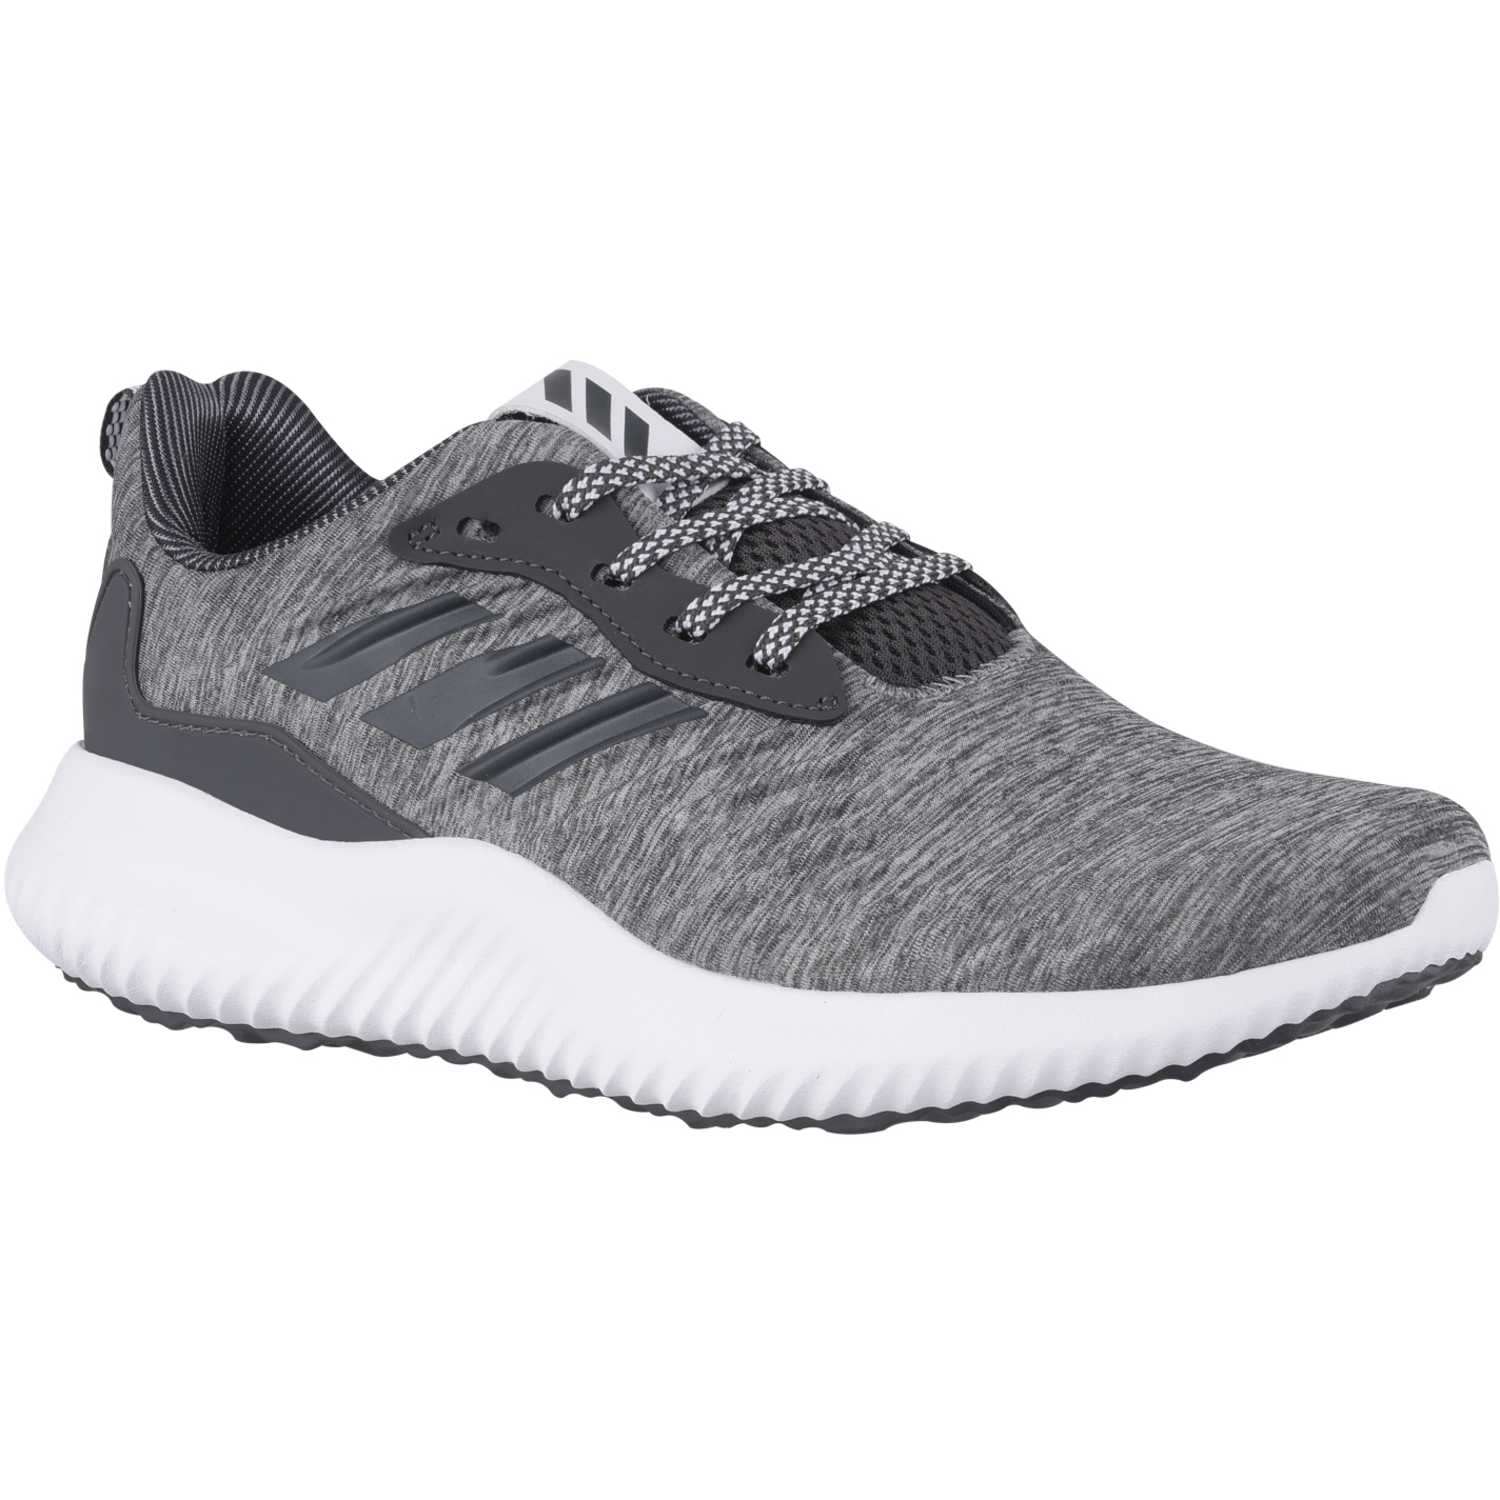 uk availability 85de4 99e58 Zapatilla de Mujer adidas gris  blanco alphabounce rc w